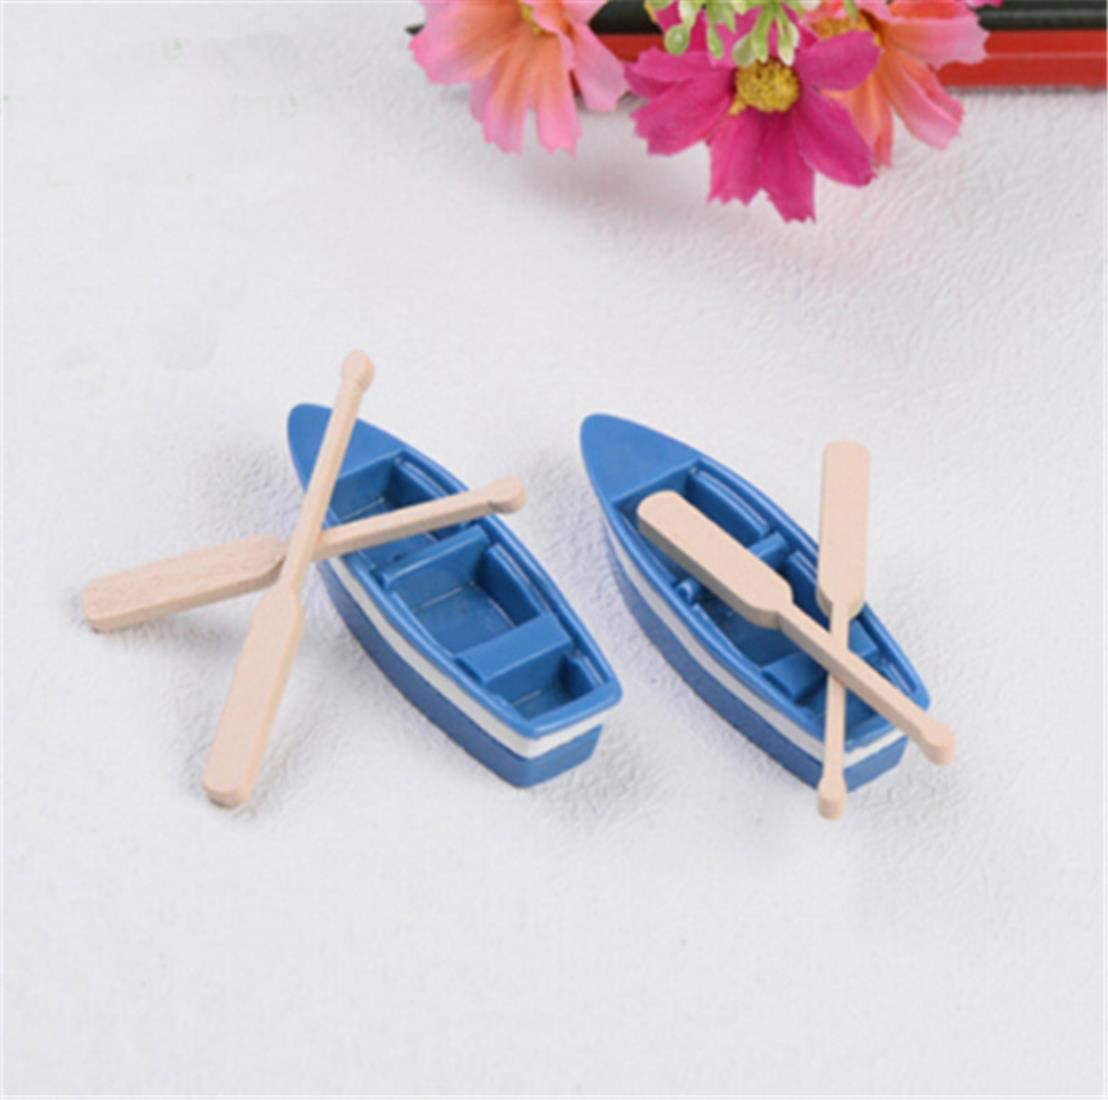 1 Set Small Boat 5 ☆ Shipping included popular and DIY Material Paddle Bryophyt Ornament